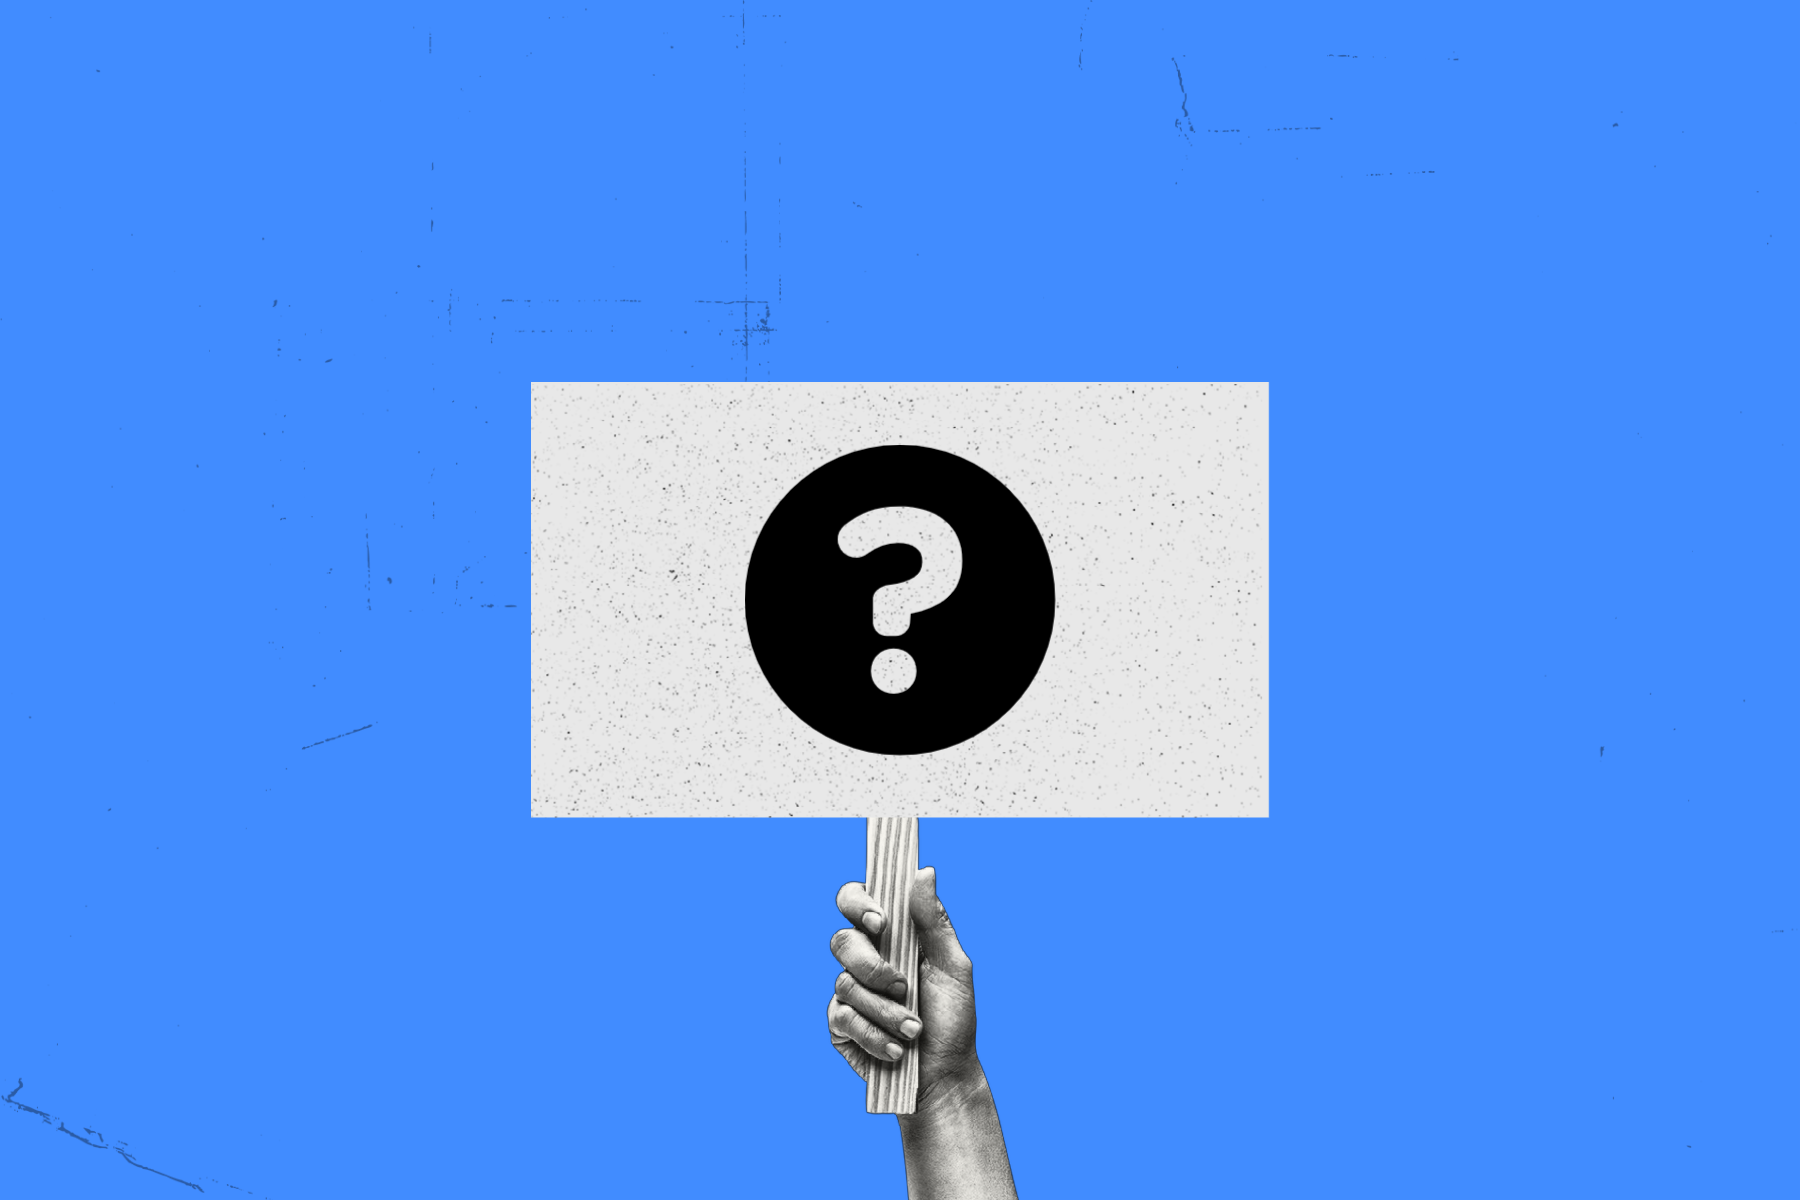 photo illustration of hand holding strike sign with a question mark on it